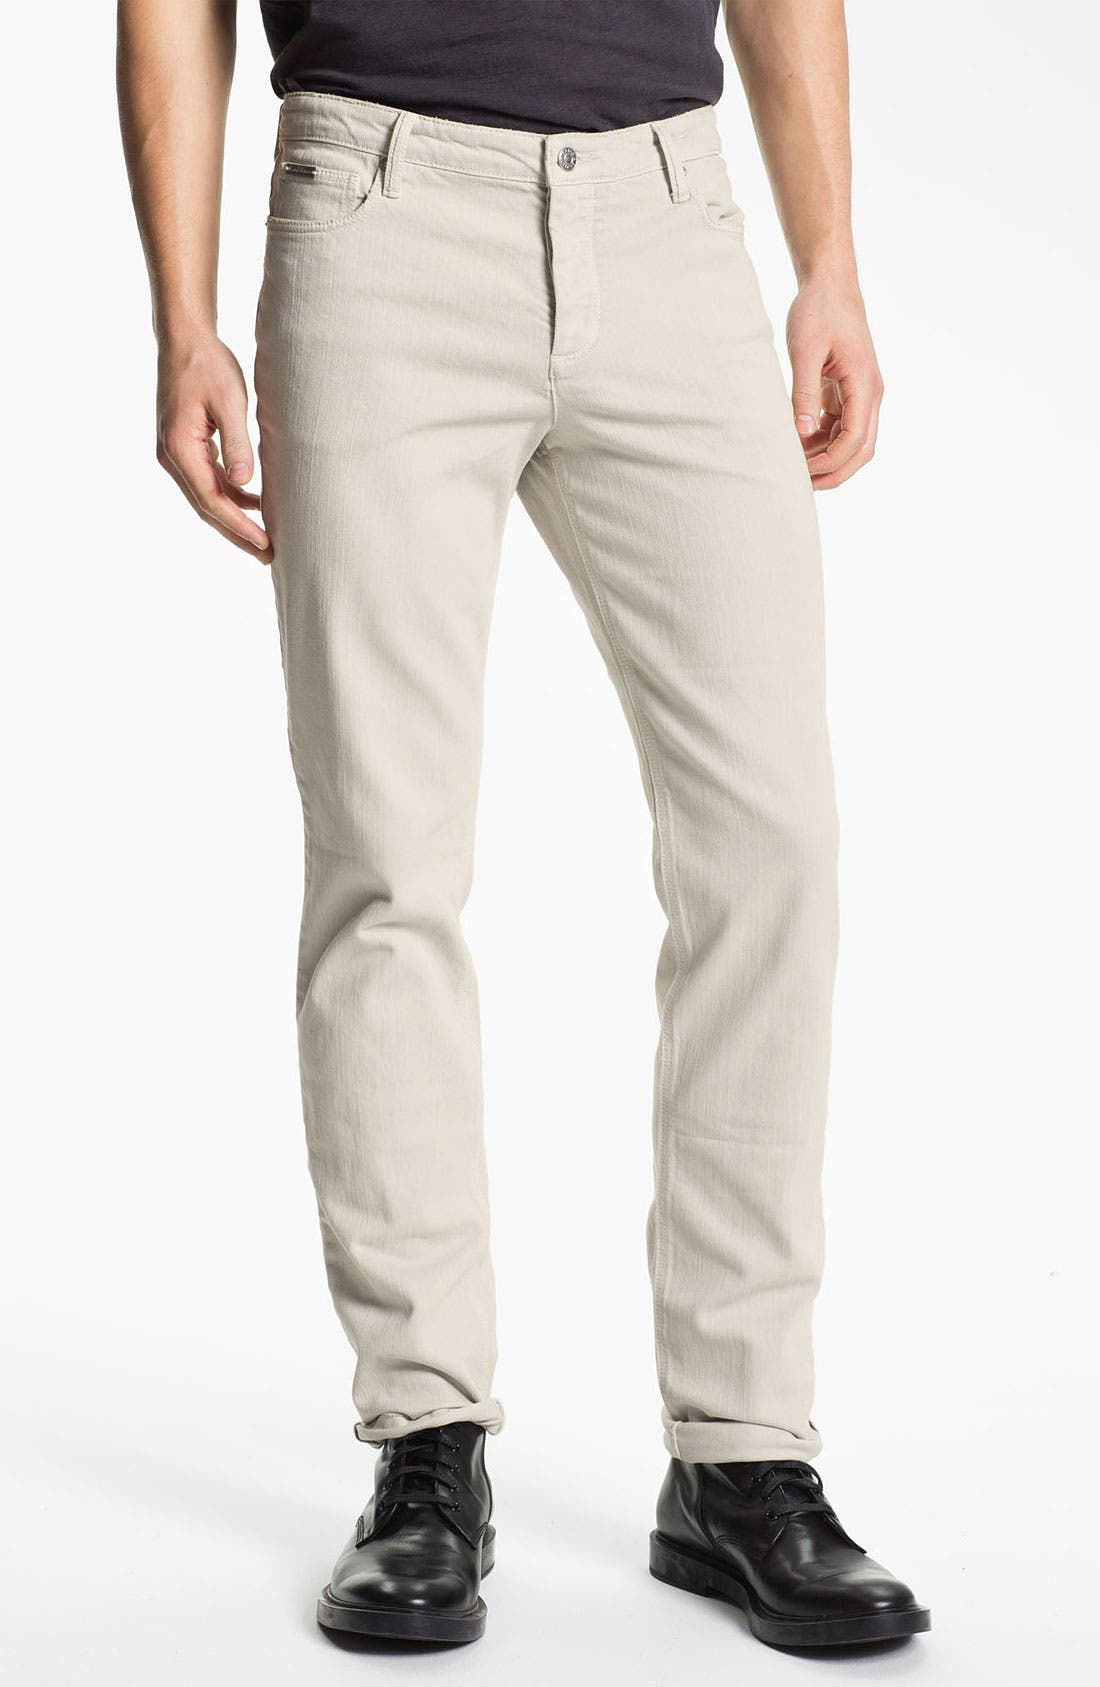 Alternate Image 1 Selected - Zadig & Voltaire 'Strokes' Straight Leg Jeans